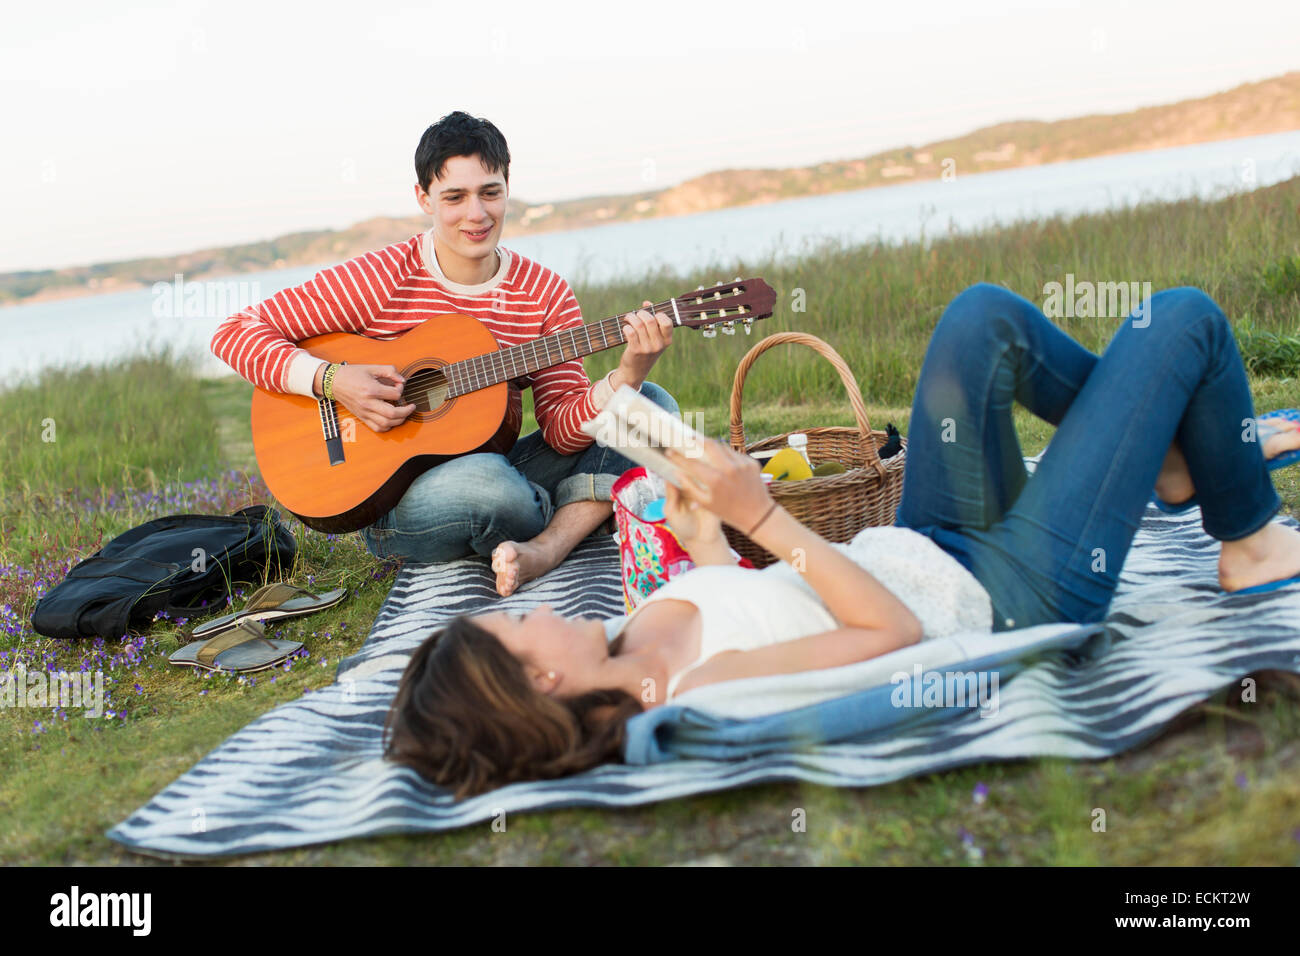 Teenage girl reading book with boyfriend playing guitar during picnic Stock Photo